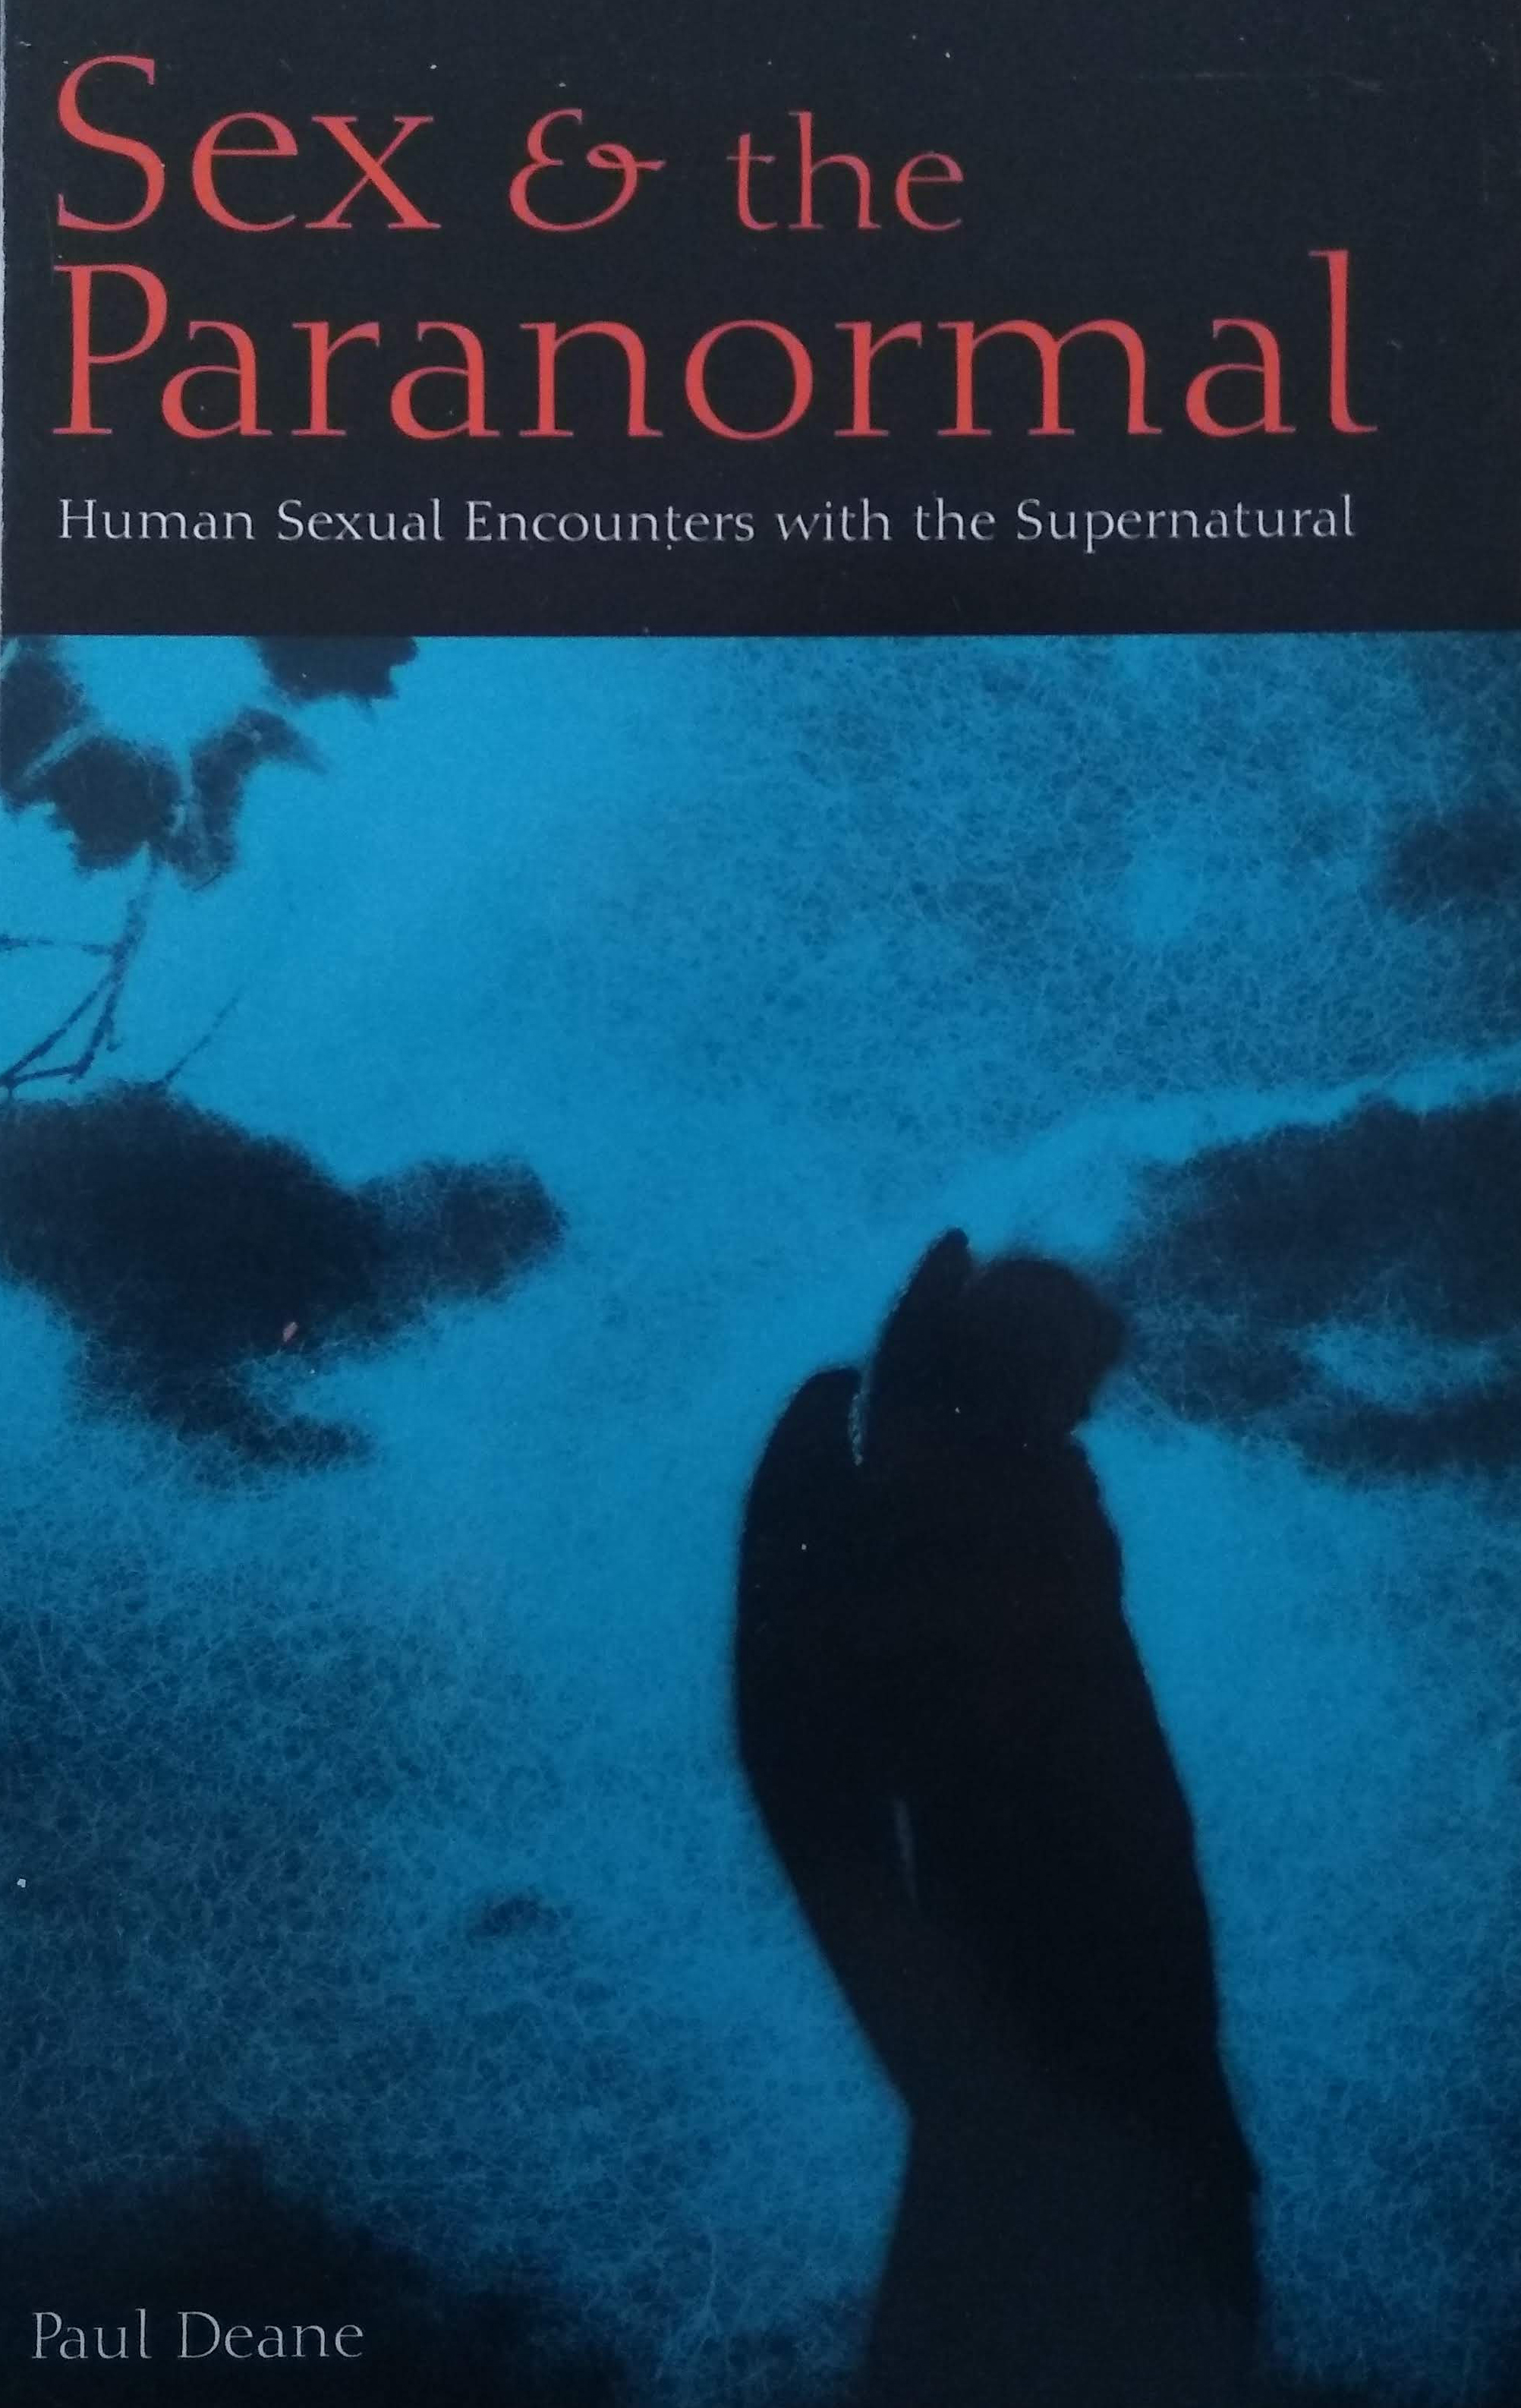 Sex and the Paranormal